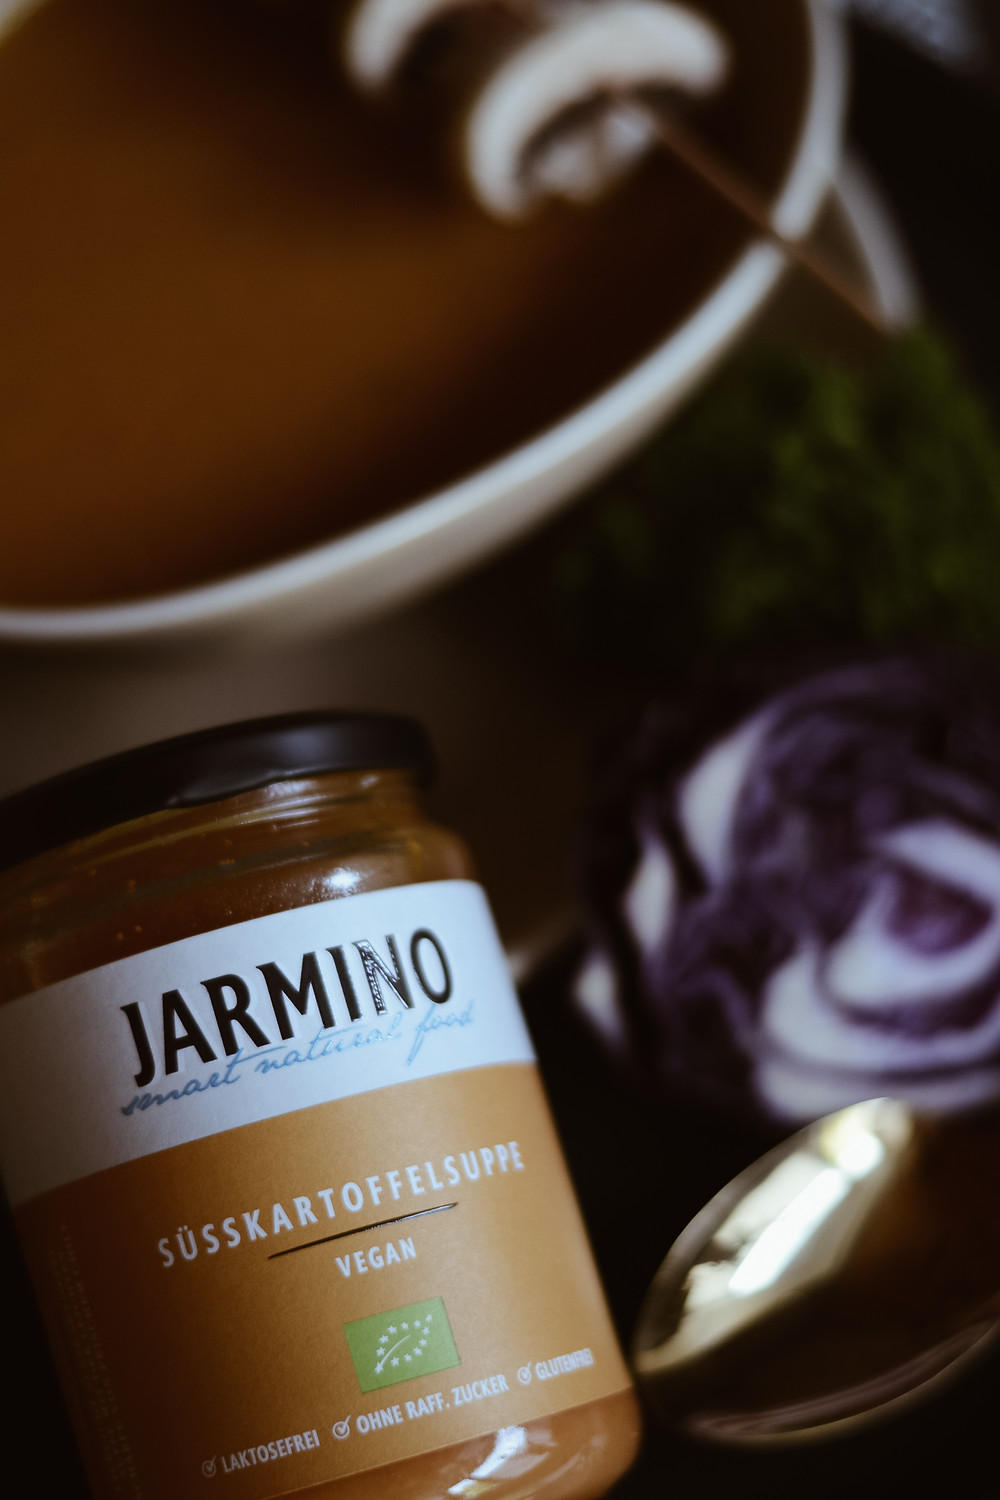 Soup-Cleanse w/ Jarmino